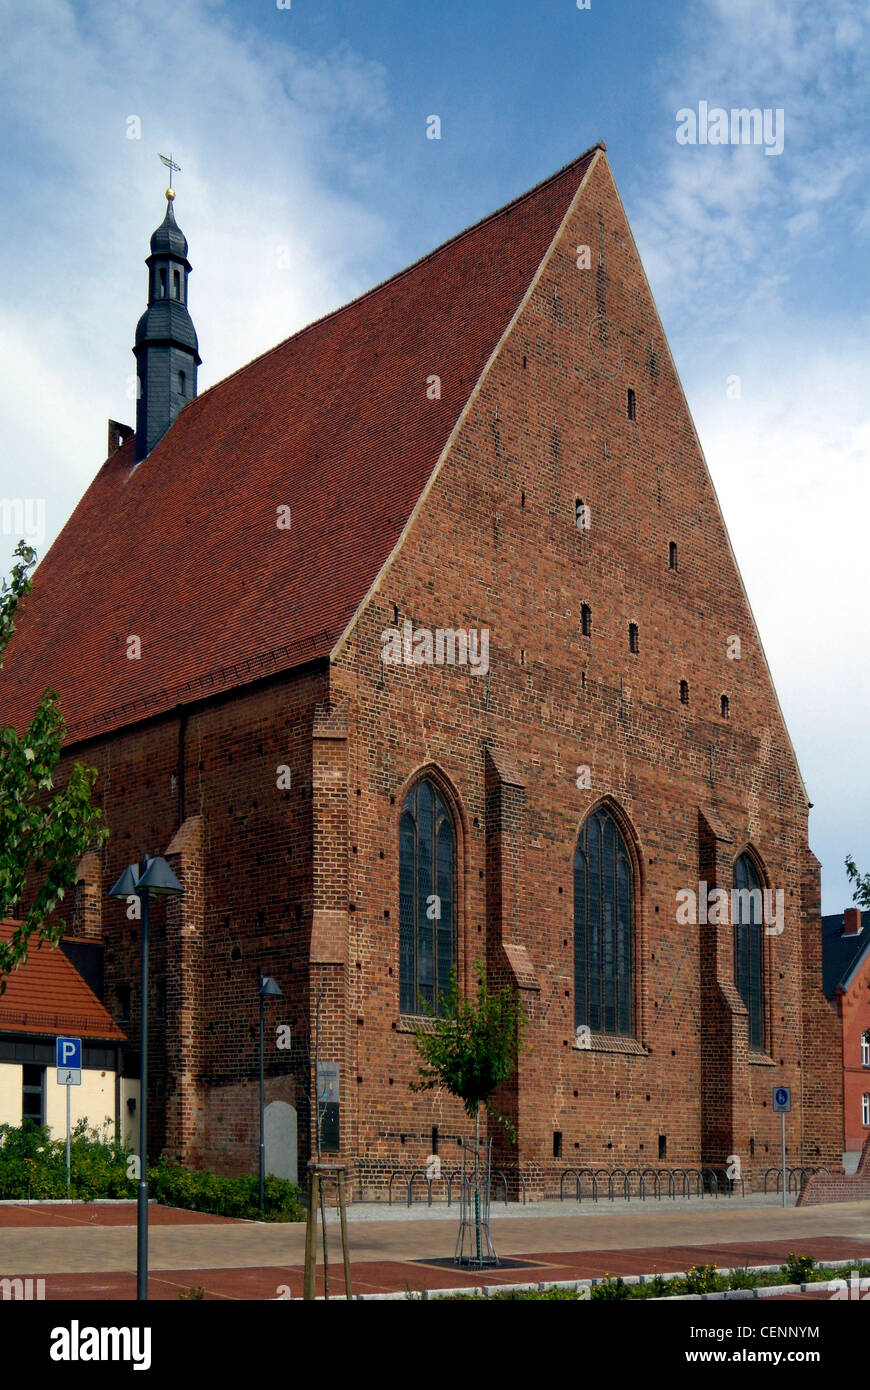 Former monastery in the Brandenburg city of Jueterbog. - Stock Image